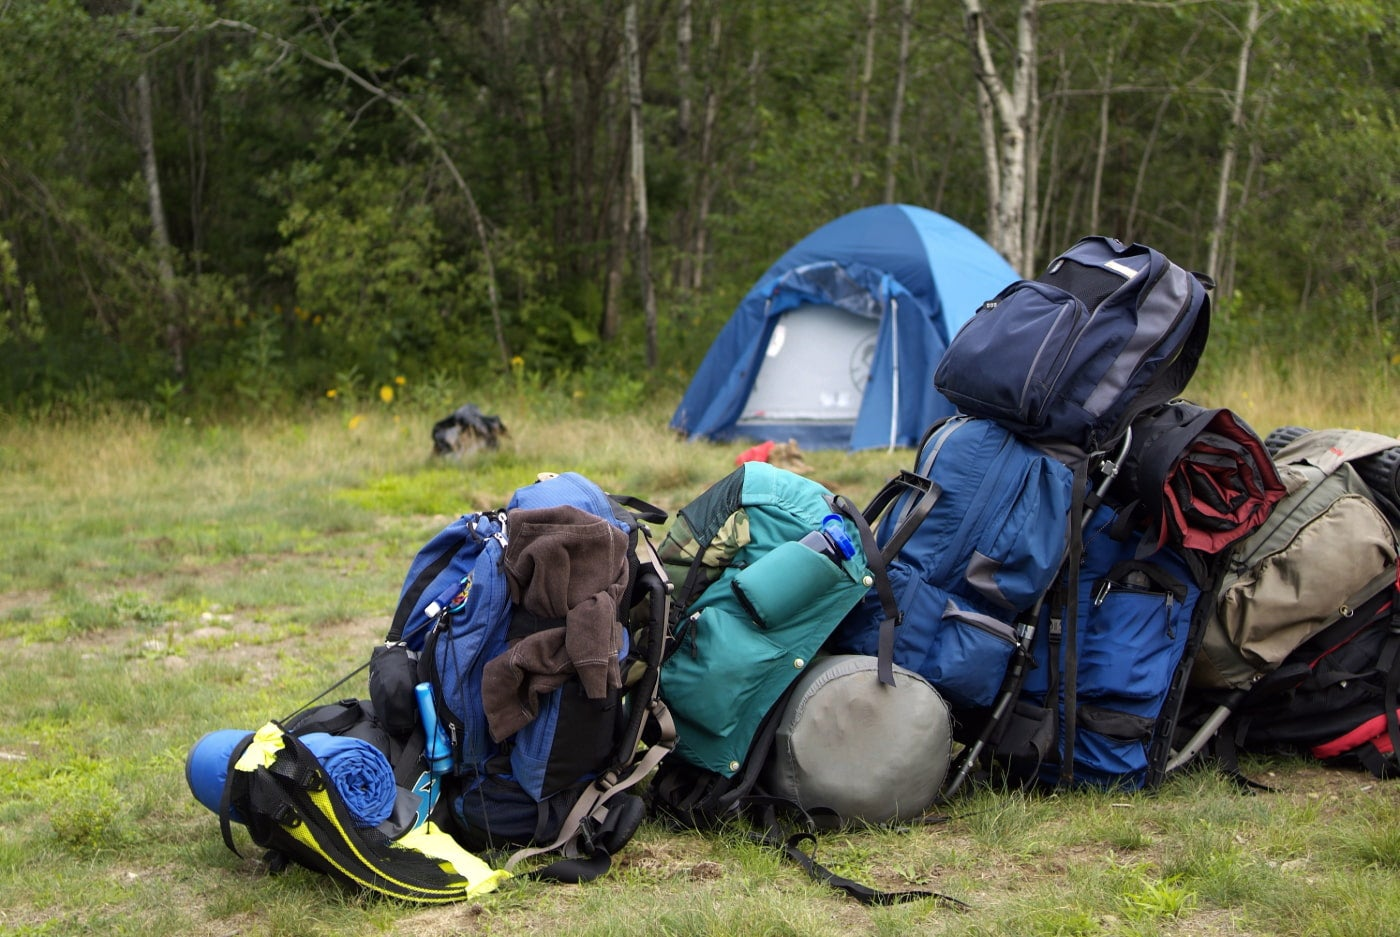 Blue and green backpacking packs stacked in a pile at a wooded tent campsite